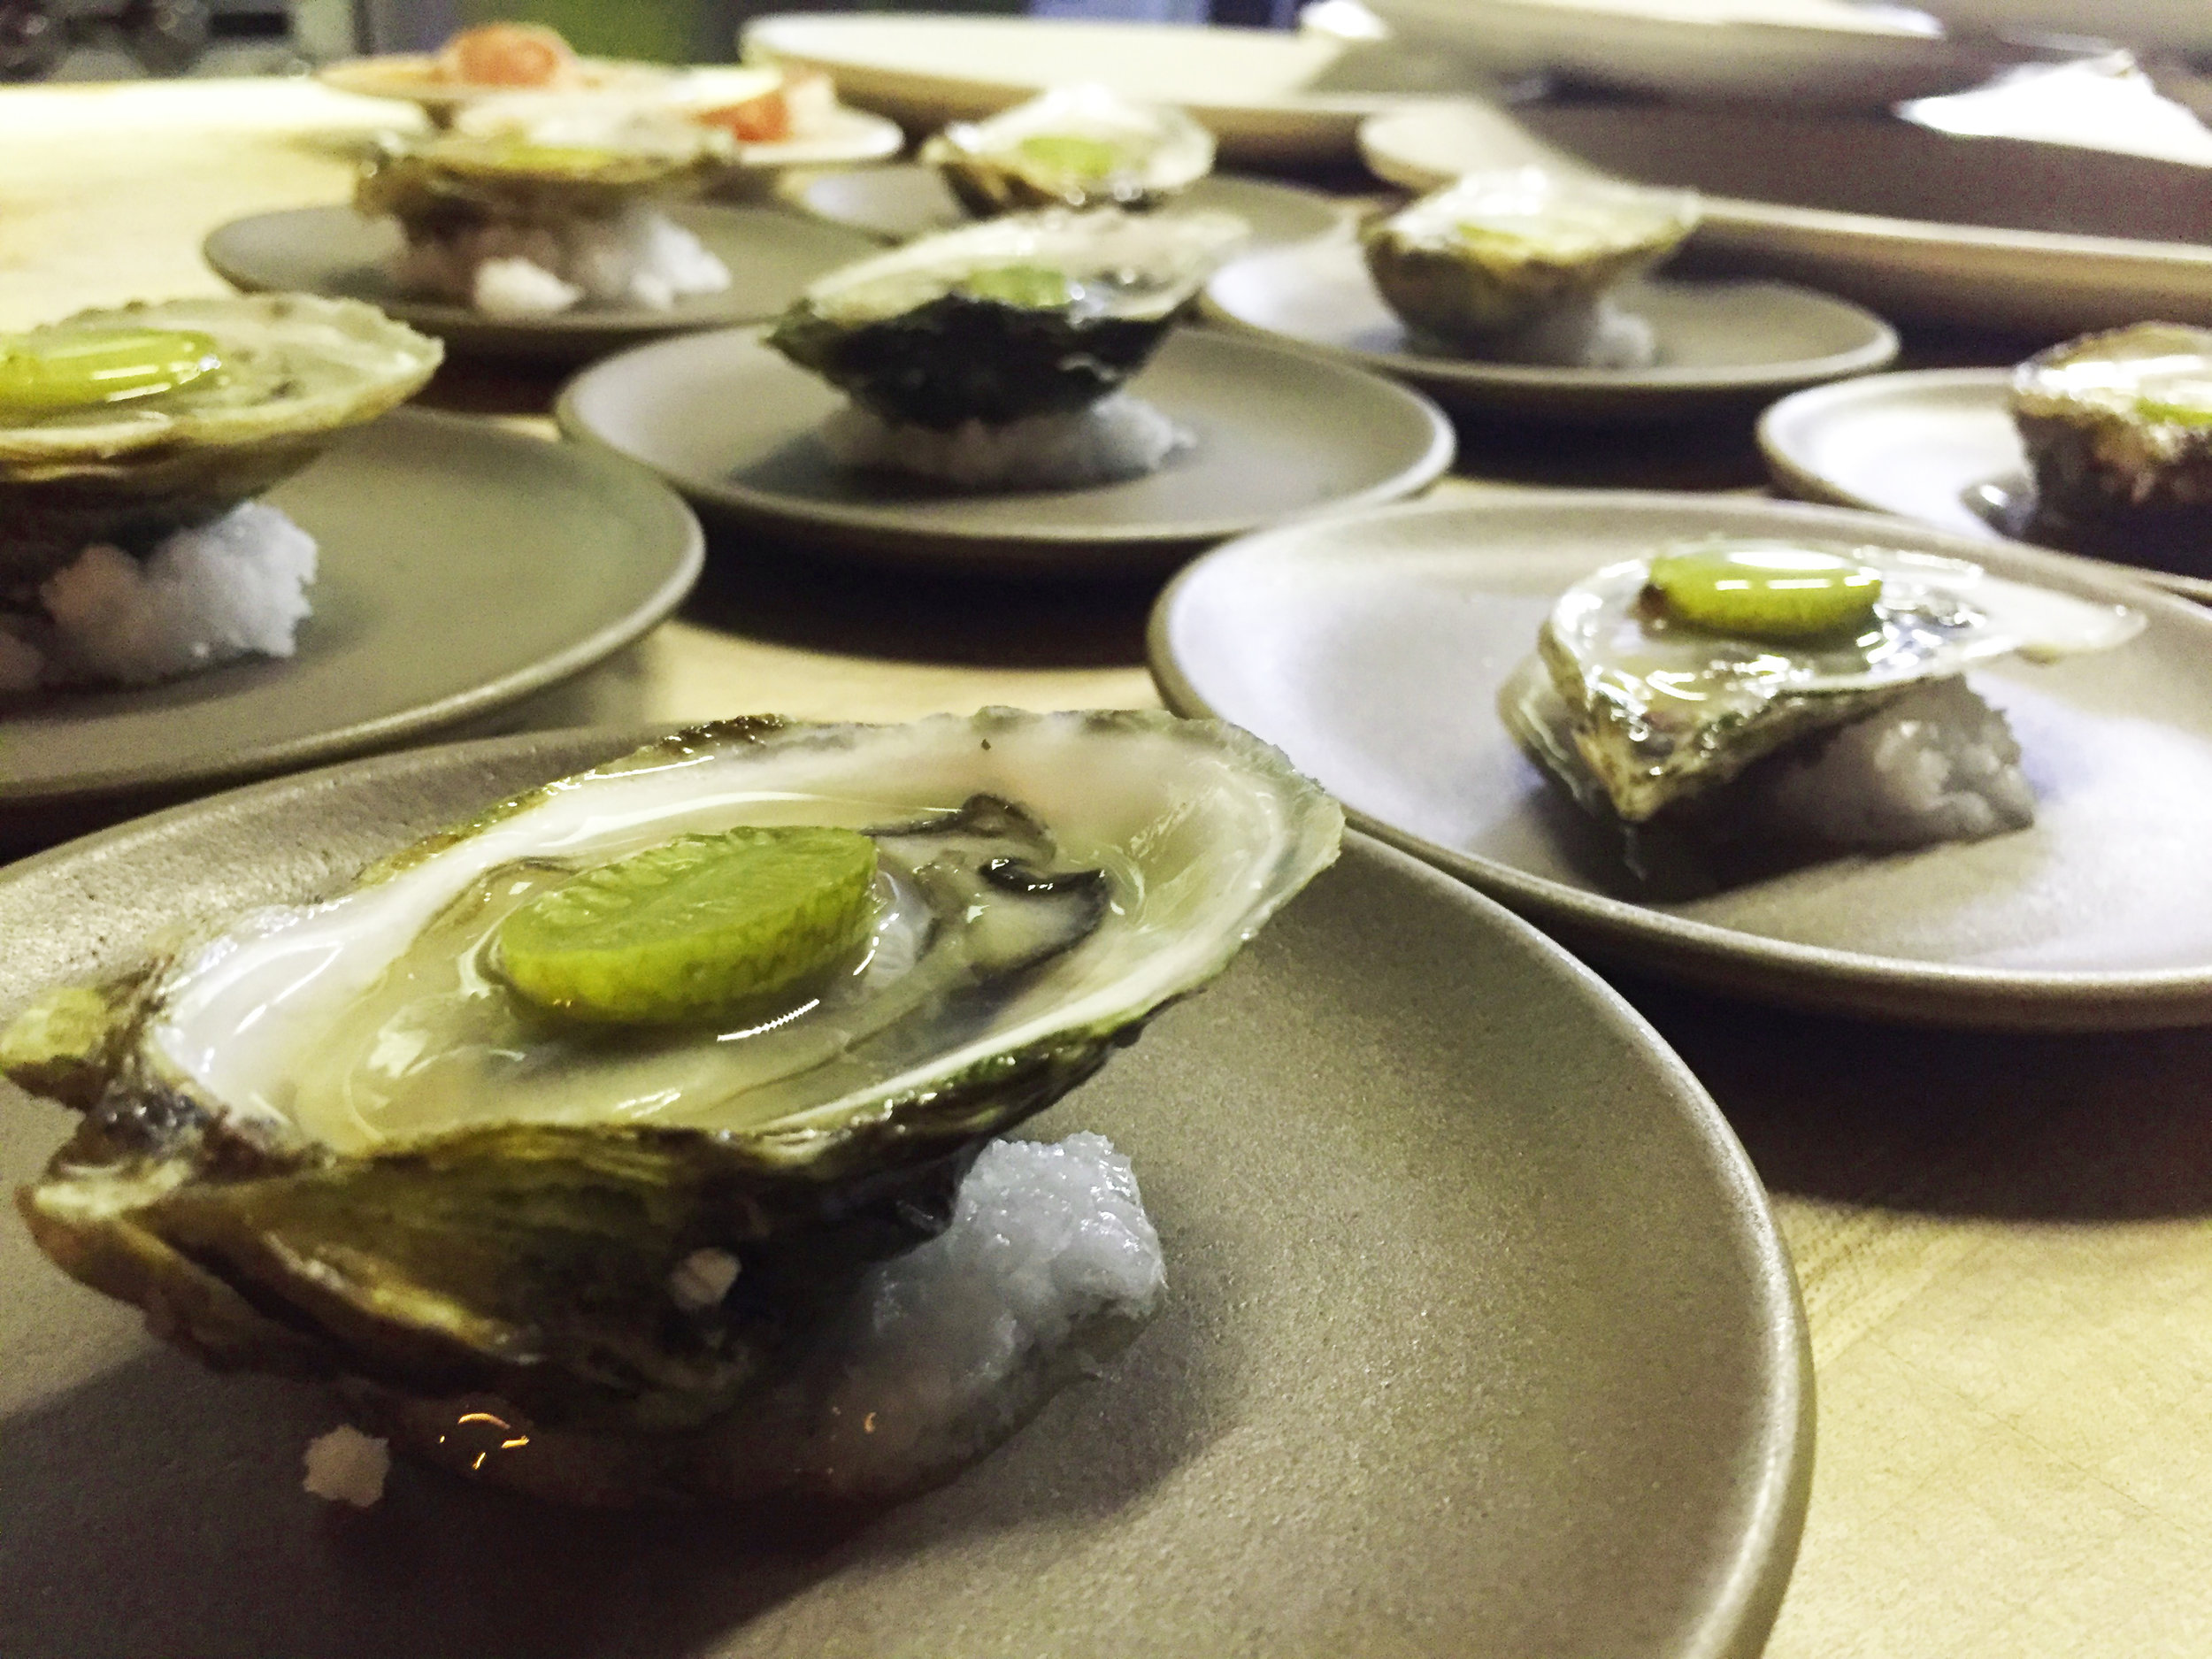 Oysters with a pickled watermelon cucumber are the perfect way to start the evening. An amuse with scents of the ocean. Chef Jordan Ware works next to the guests to provide a wonderful connection with the food.